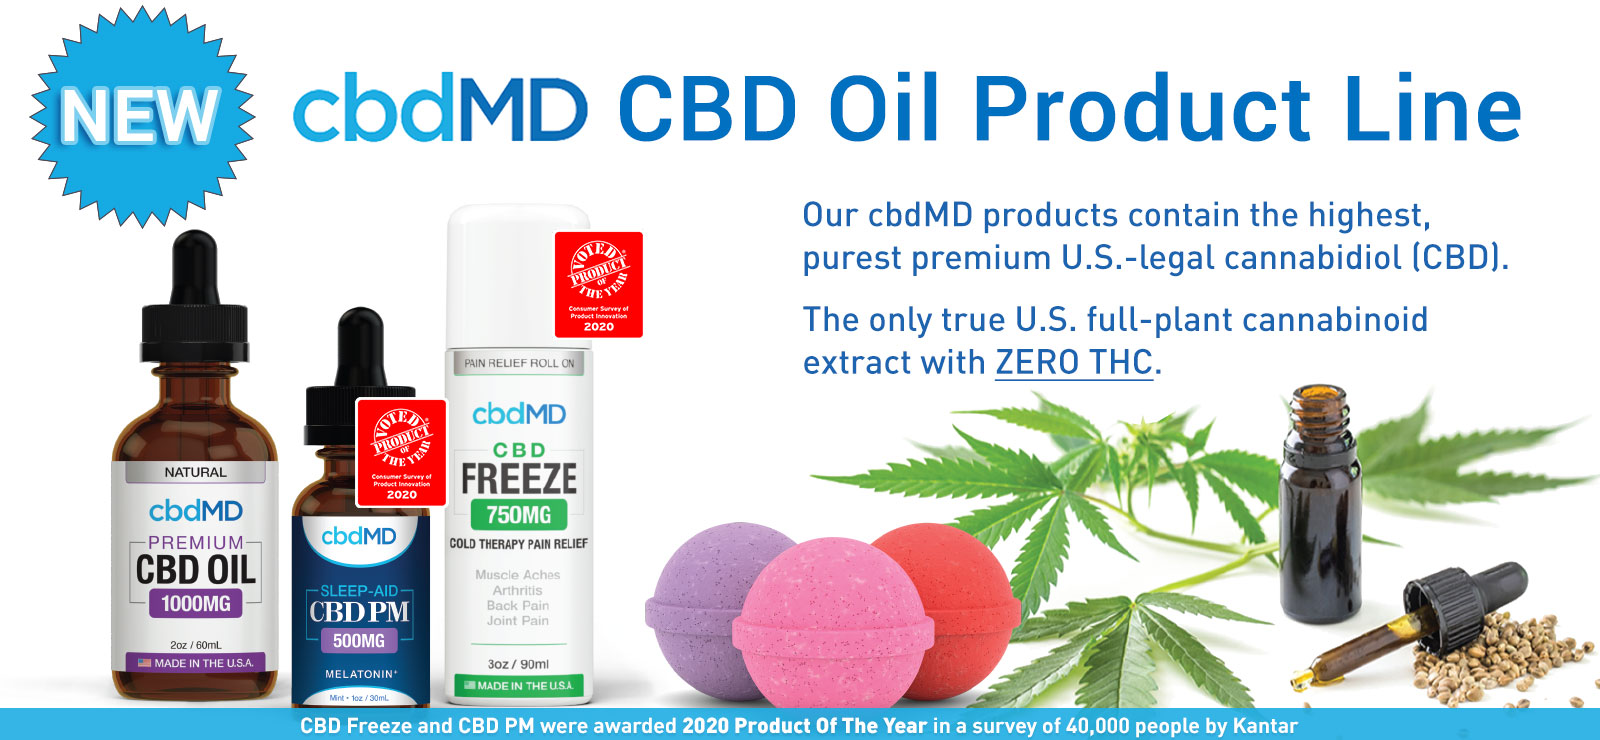 Dr. Murray's Online now offers a cbdMD line of products made from CBD Oil. Cannabidiol, more commonly known as CBD, is a compound extracted from United States' hemp containing significant beneficial properties.